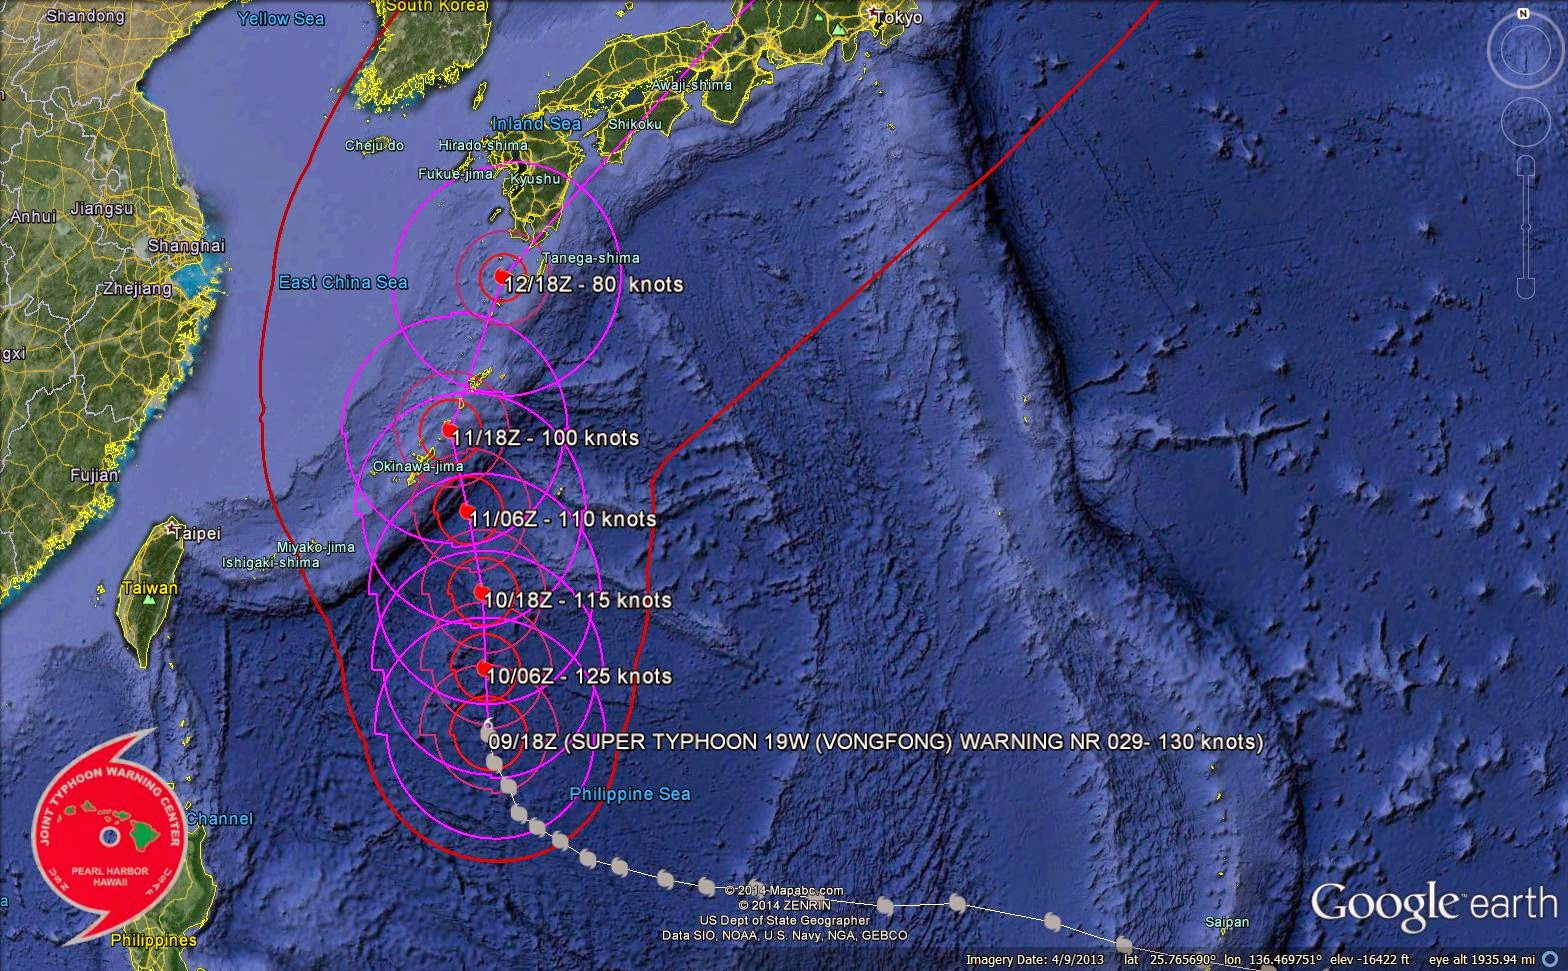 current and projected track of super typhoon vongfong